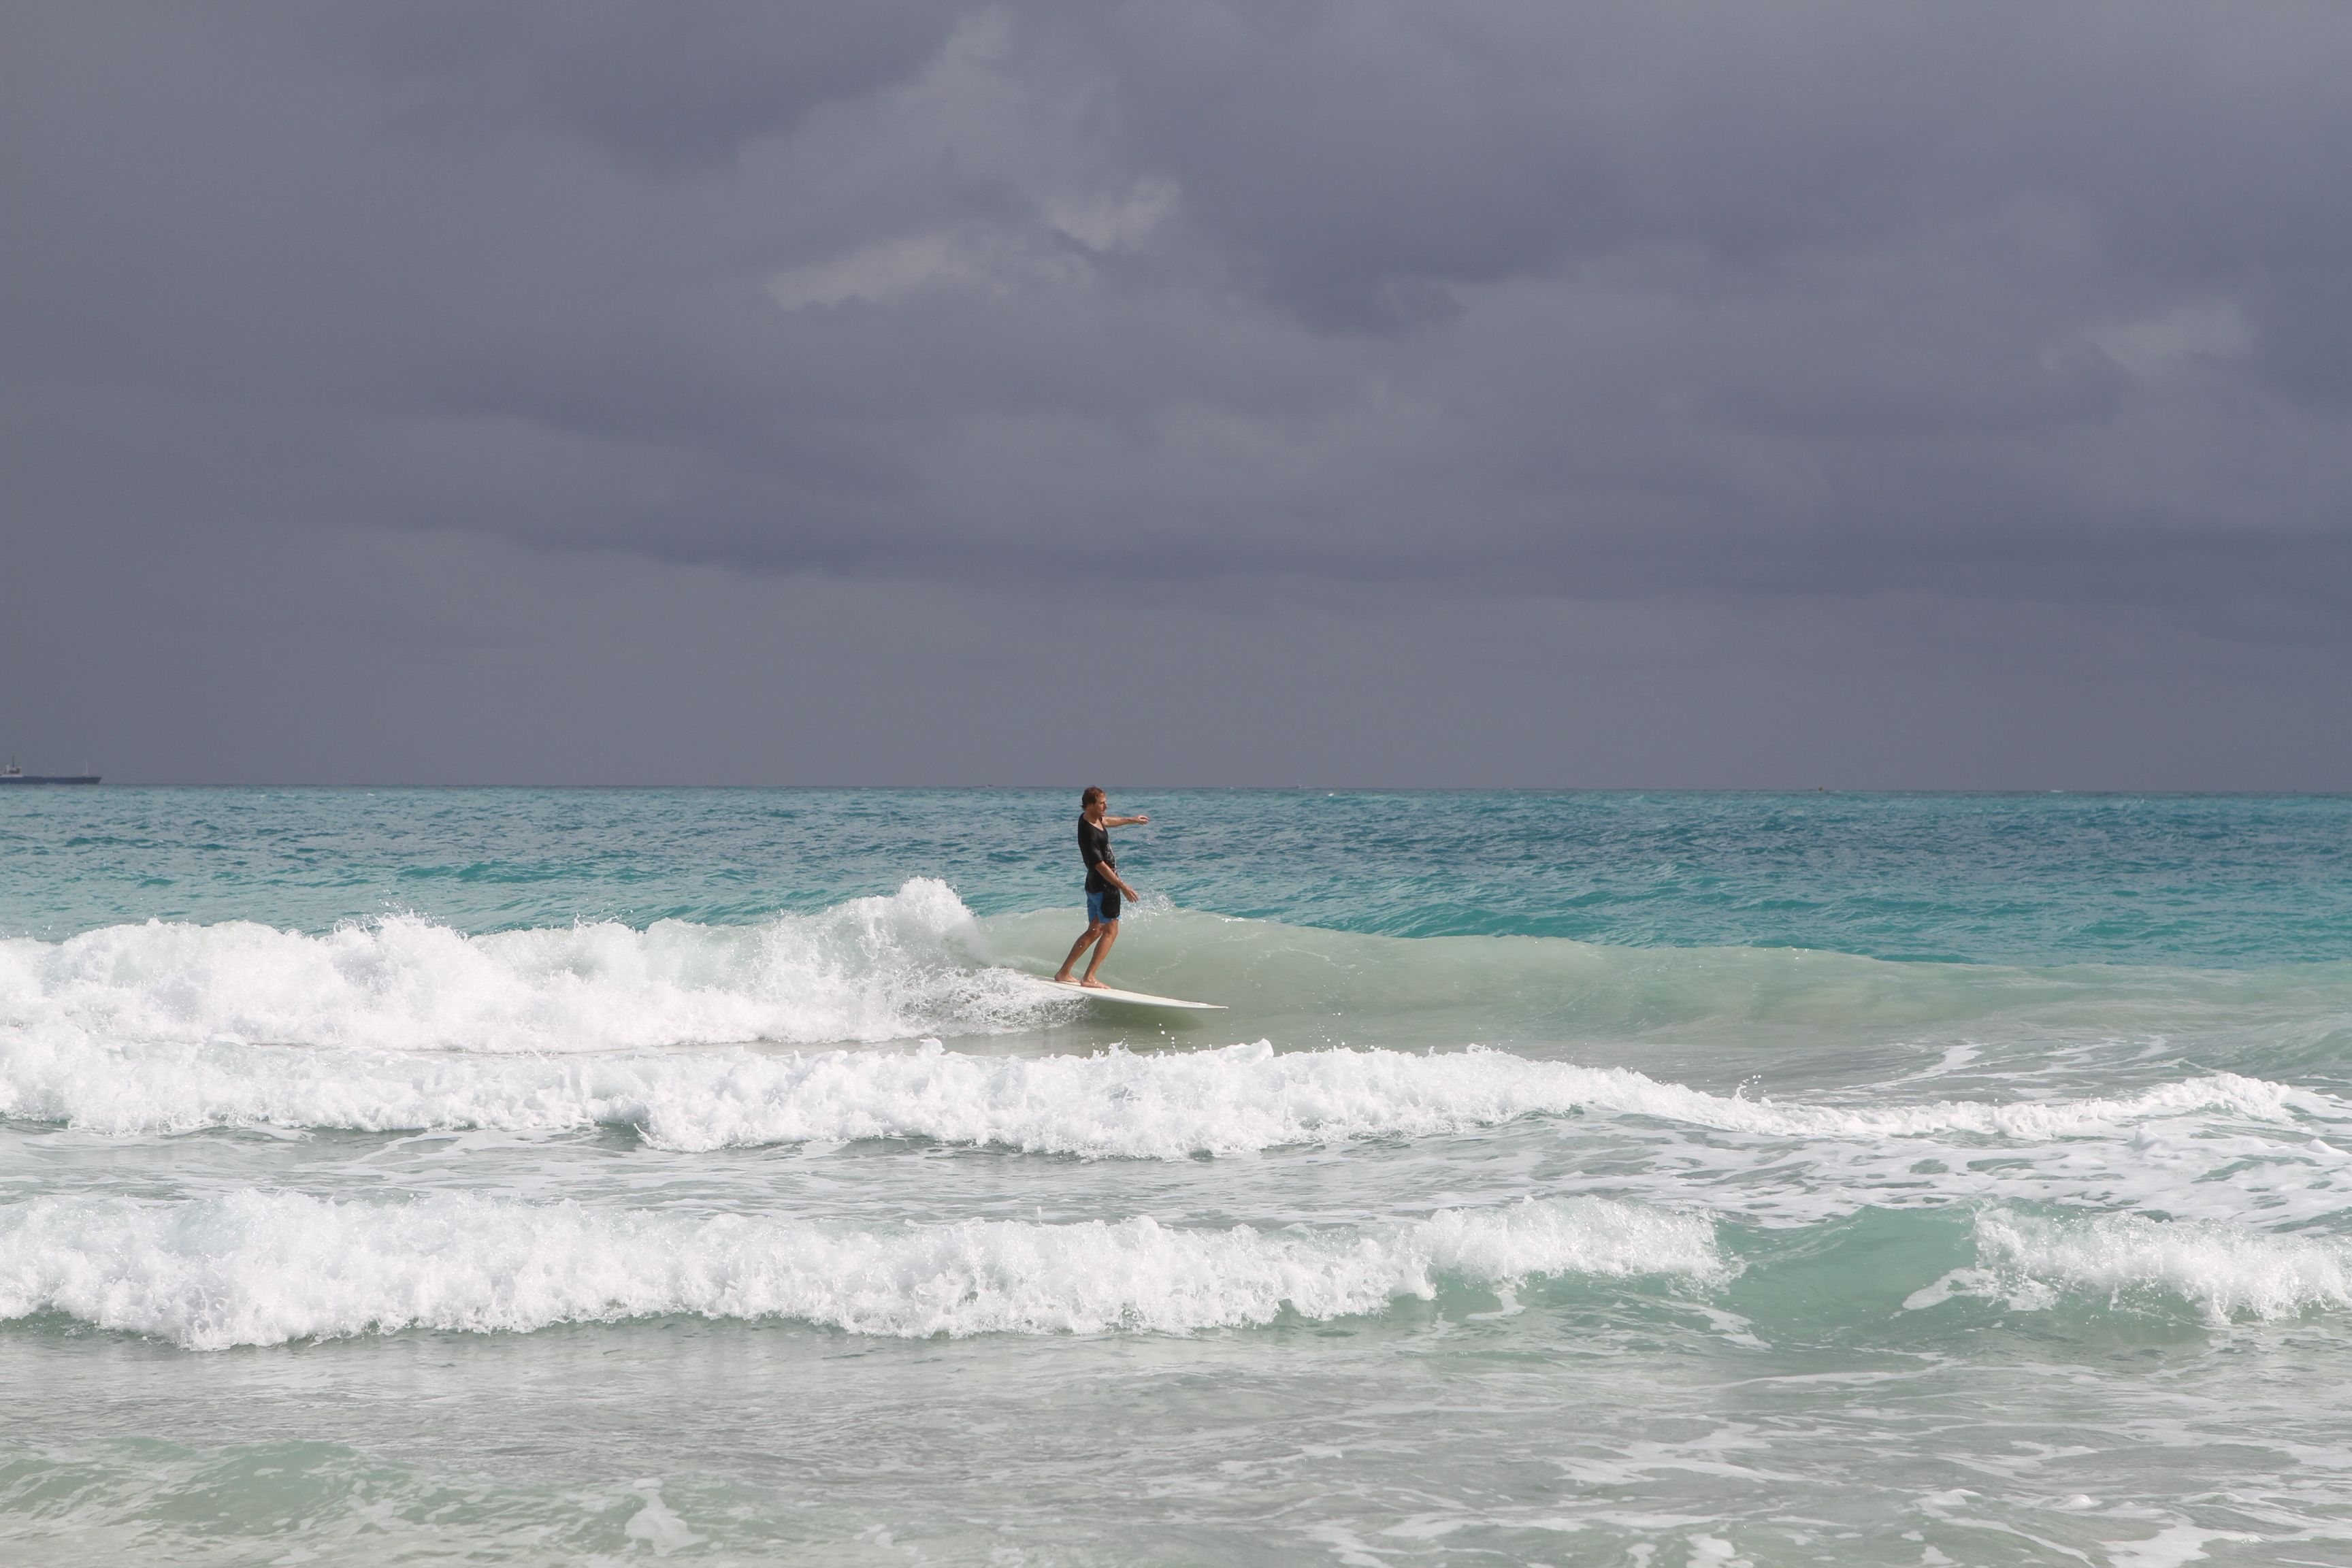 Small Day Surfing In South Beach South Beach Miami Surfing South Beach